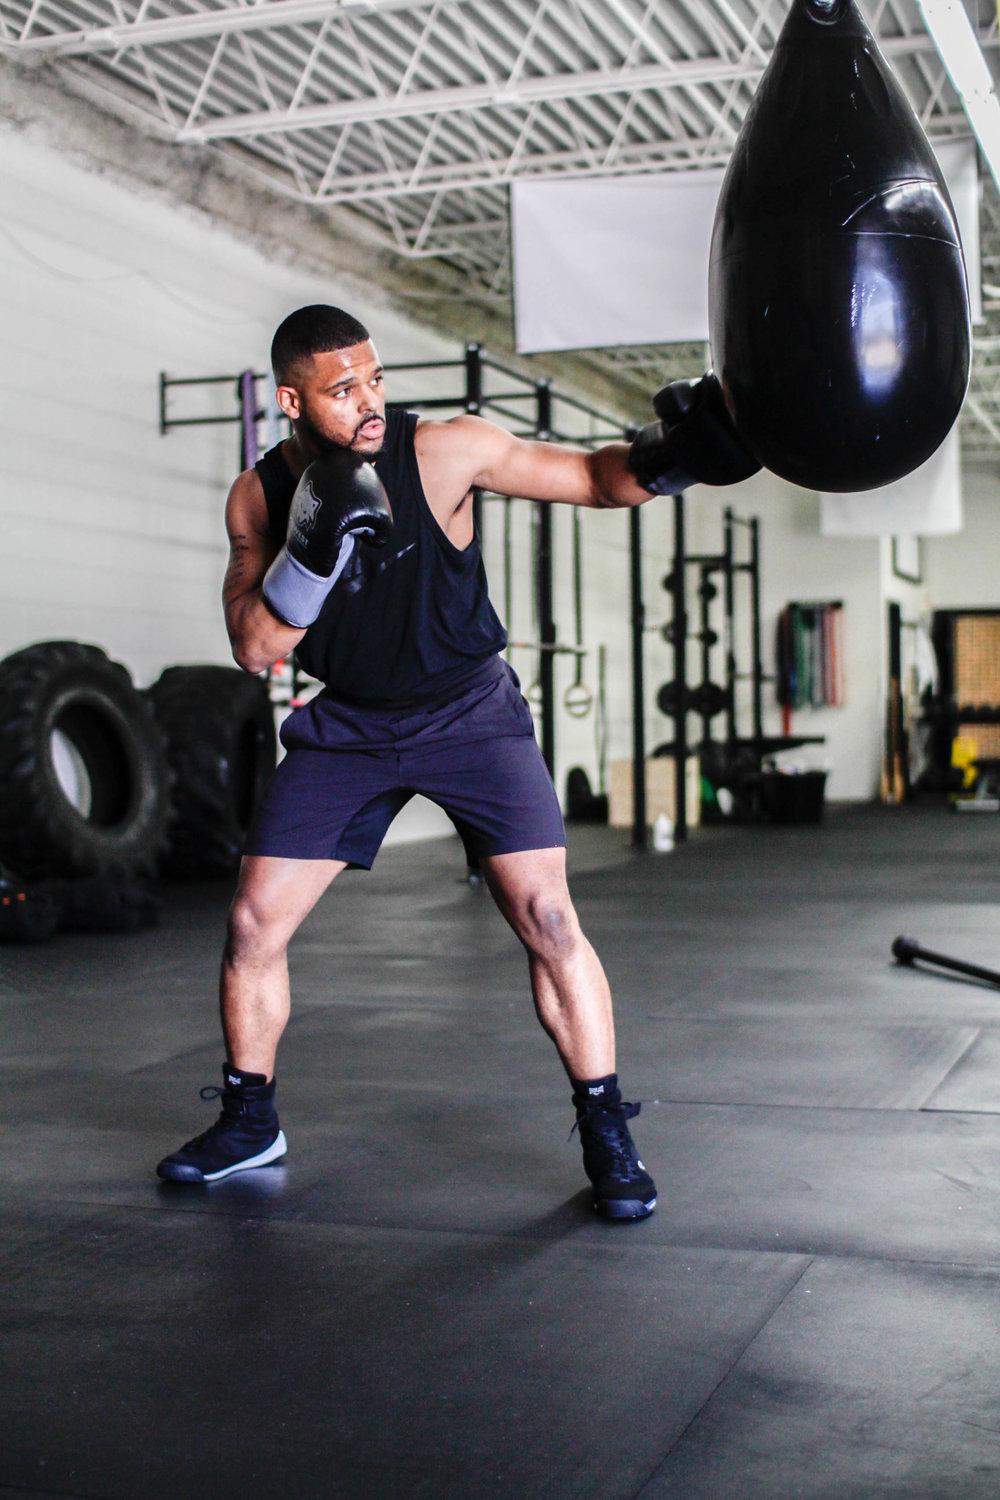 Kickboxing classes near Naperville, Illinois